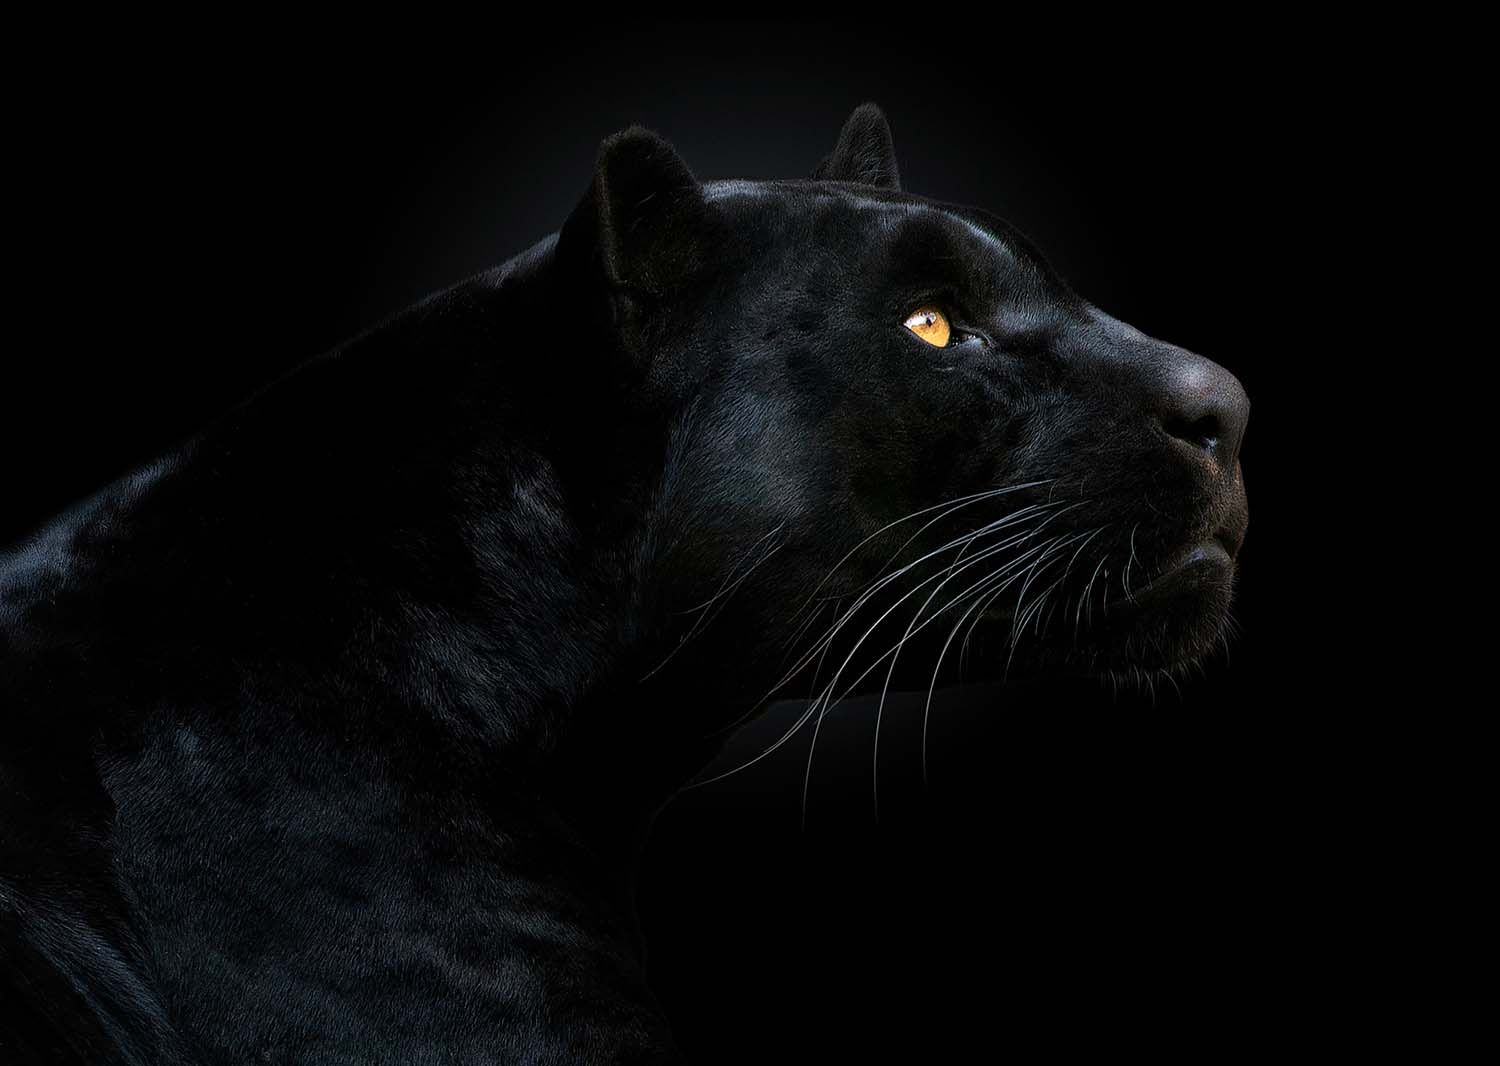 Black Panther Animal 4k Wallpapers For Mobile: 7 Revealing Animal Portraits, From Bats To Bongos